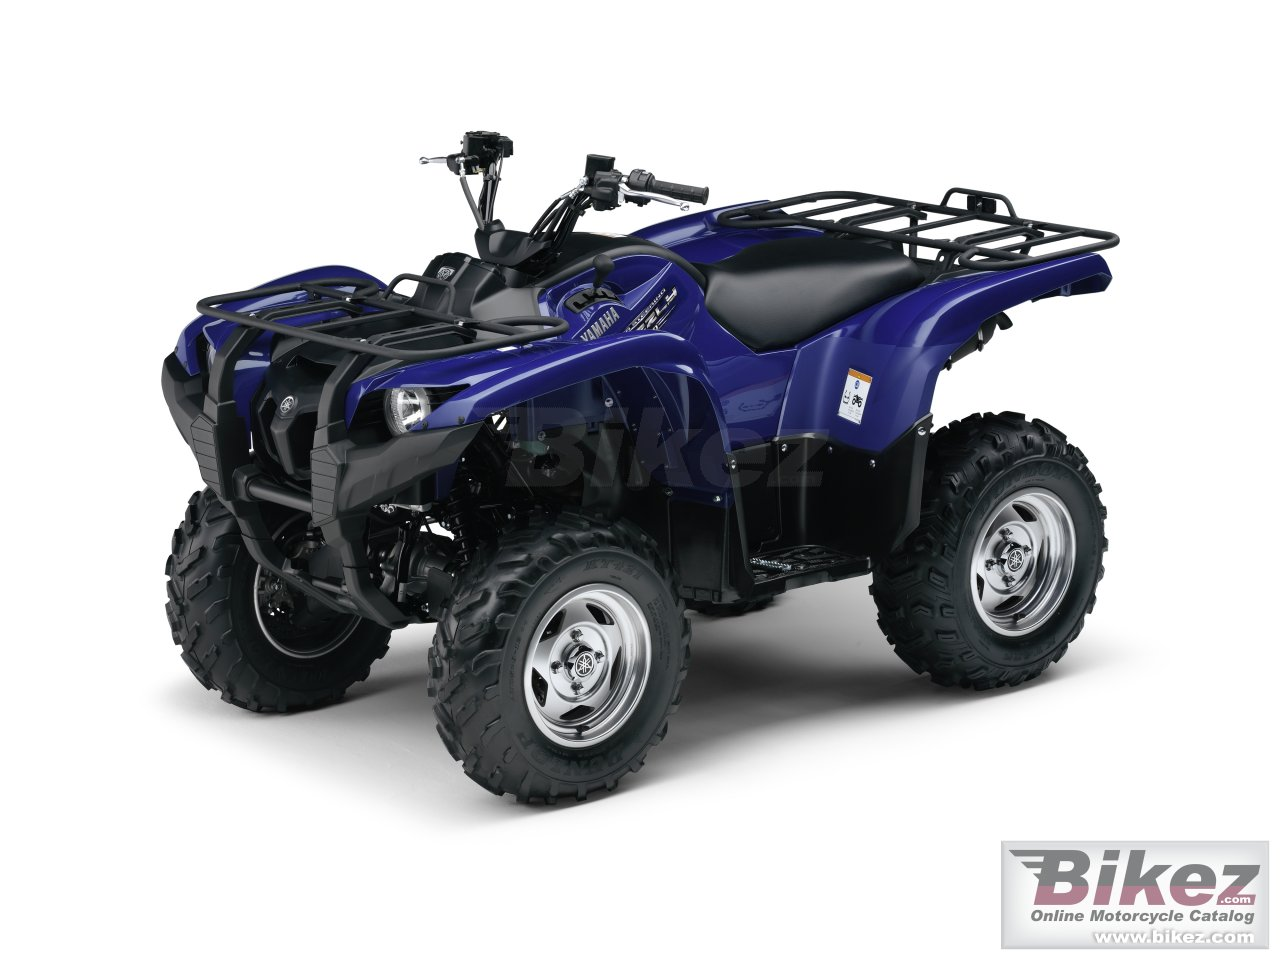 Big Yamaha grizzly 550 picture and wallpaper from Bikez.com